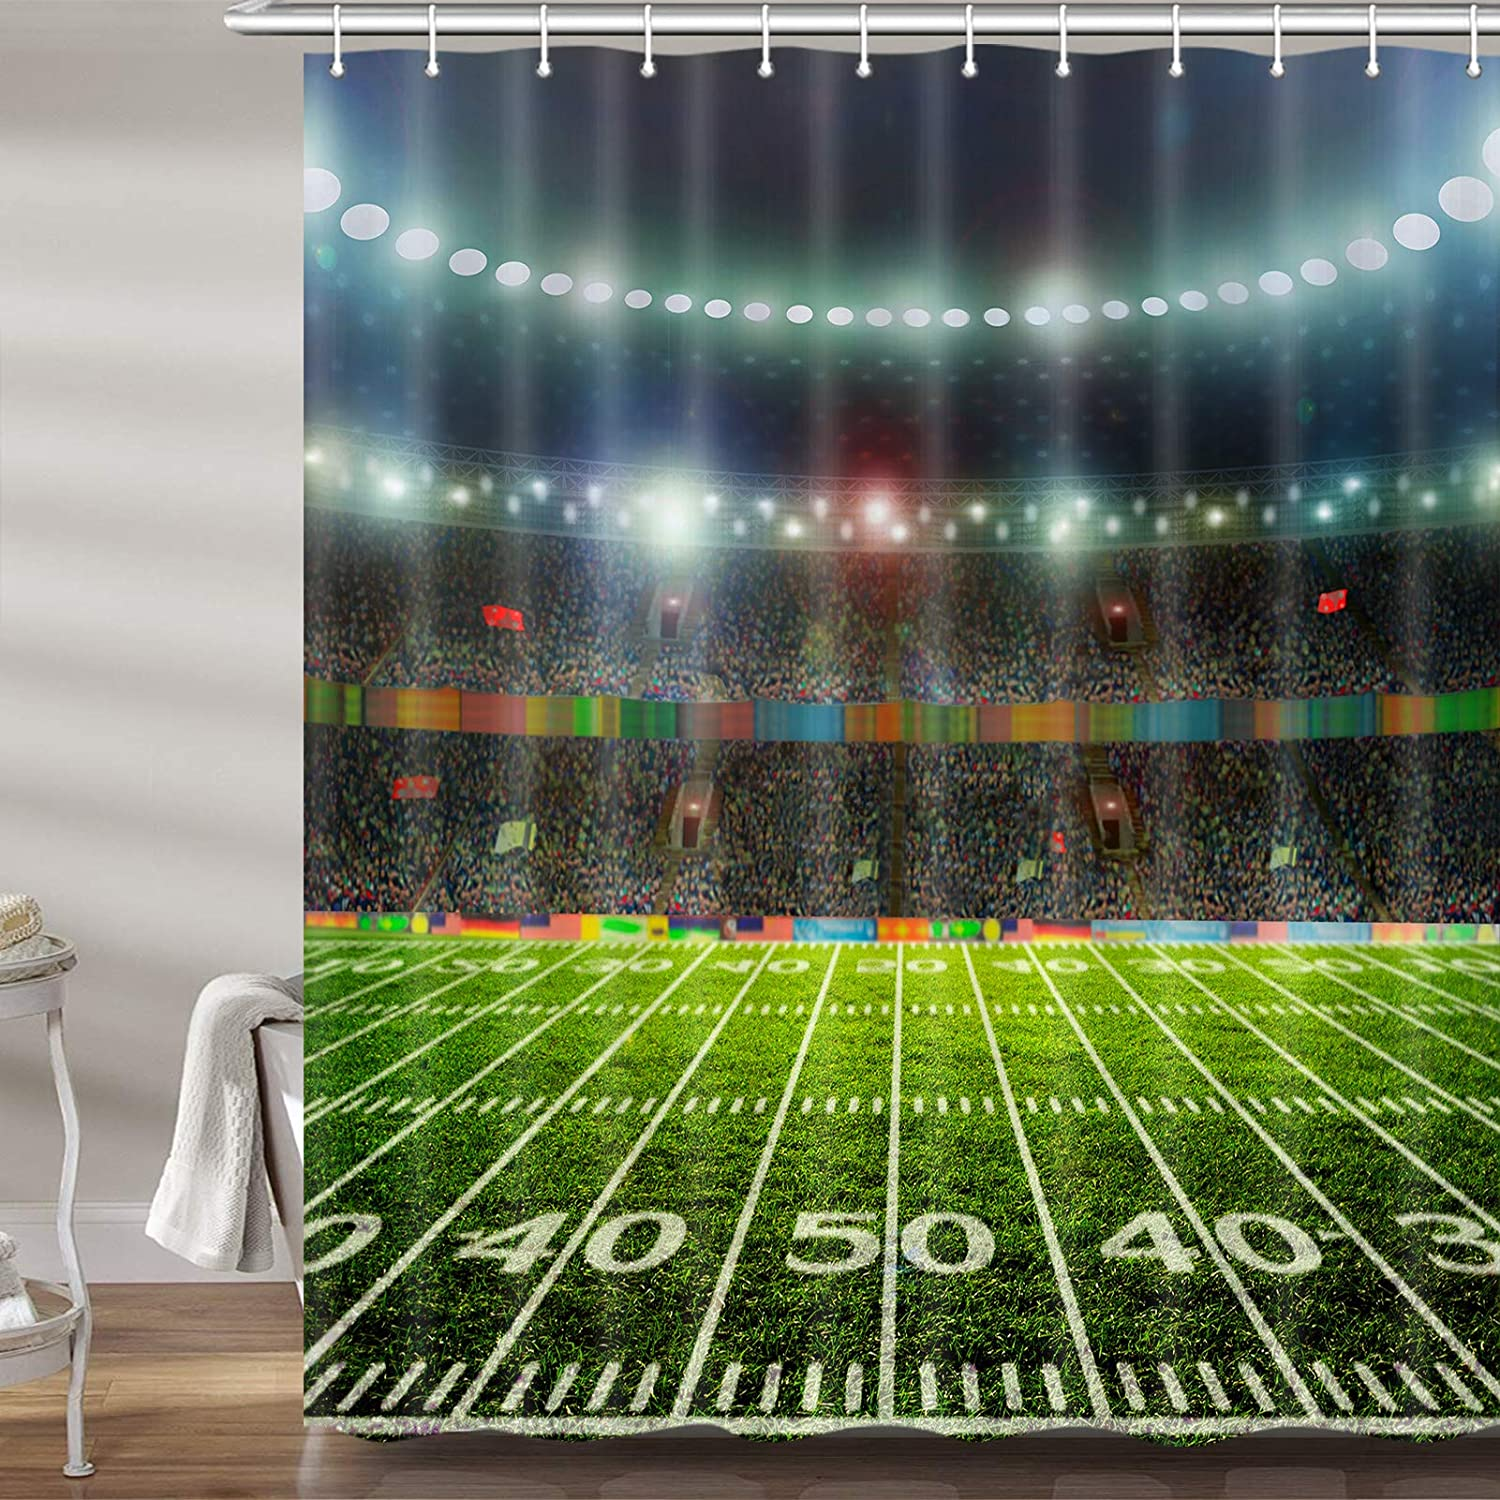 Football Field Shower Curtains New Orleans Mall for Bathroom Theme Bath Sports C Free shipping on posting reviews